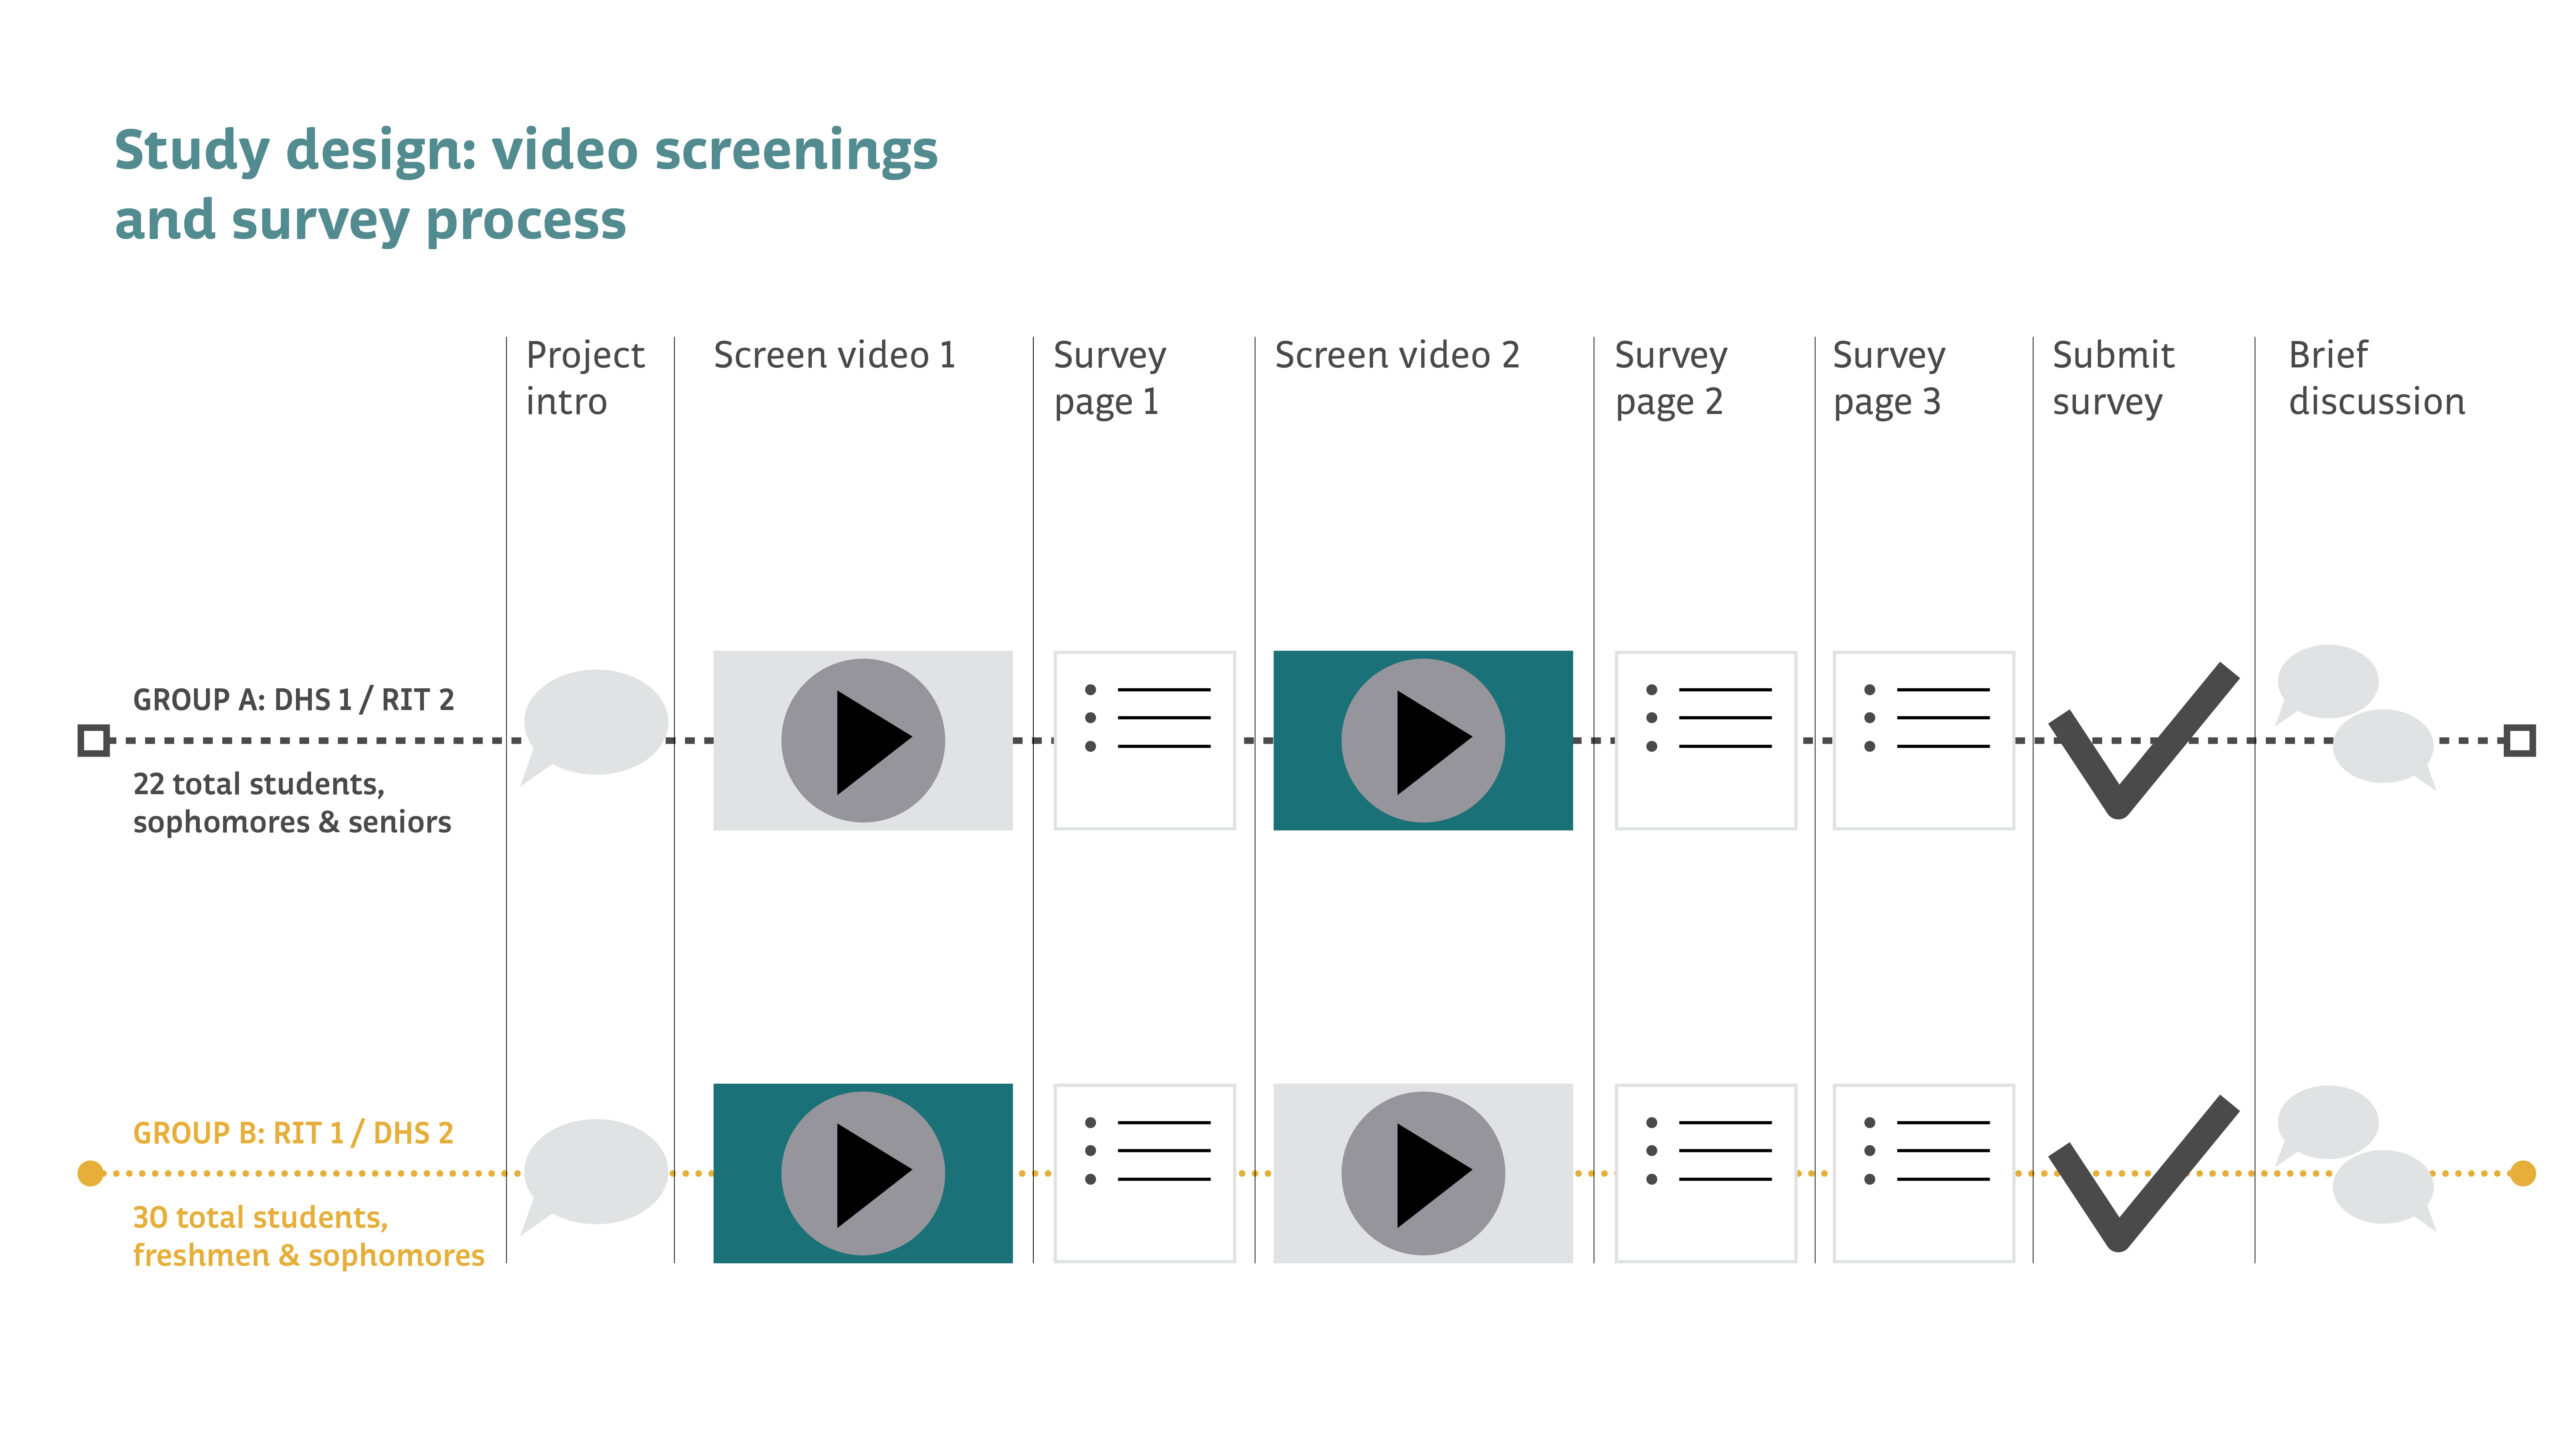 engaging-videography-study-design-video-screenings-and-survey-process